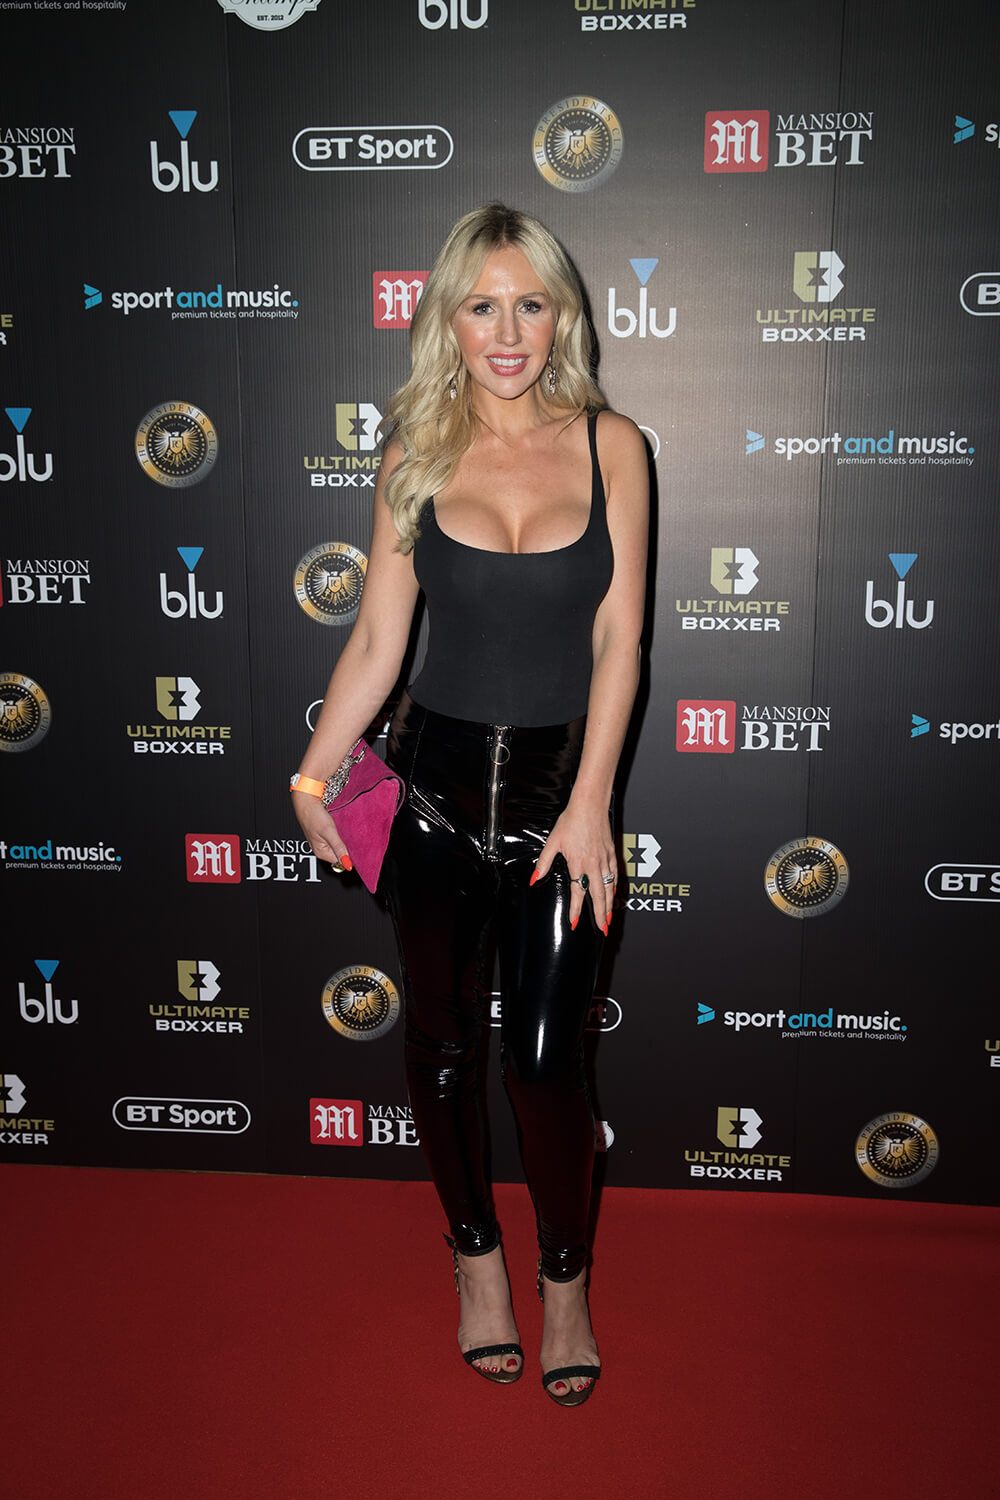 Naomi Isted attends Red Carpet for Ultimate Boxxer 3